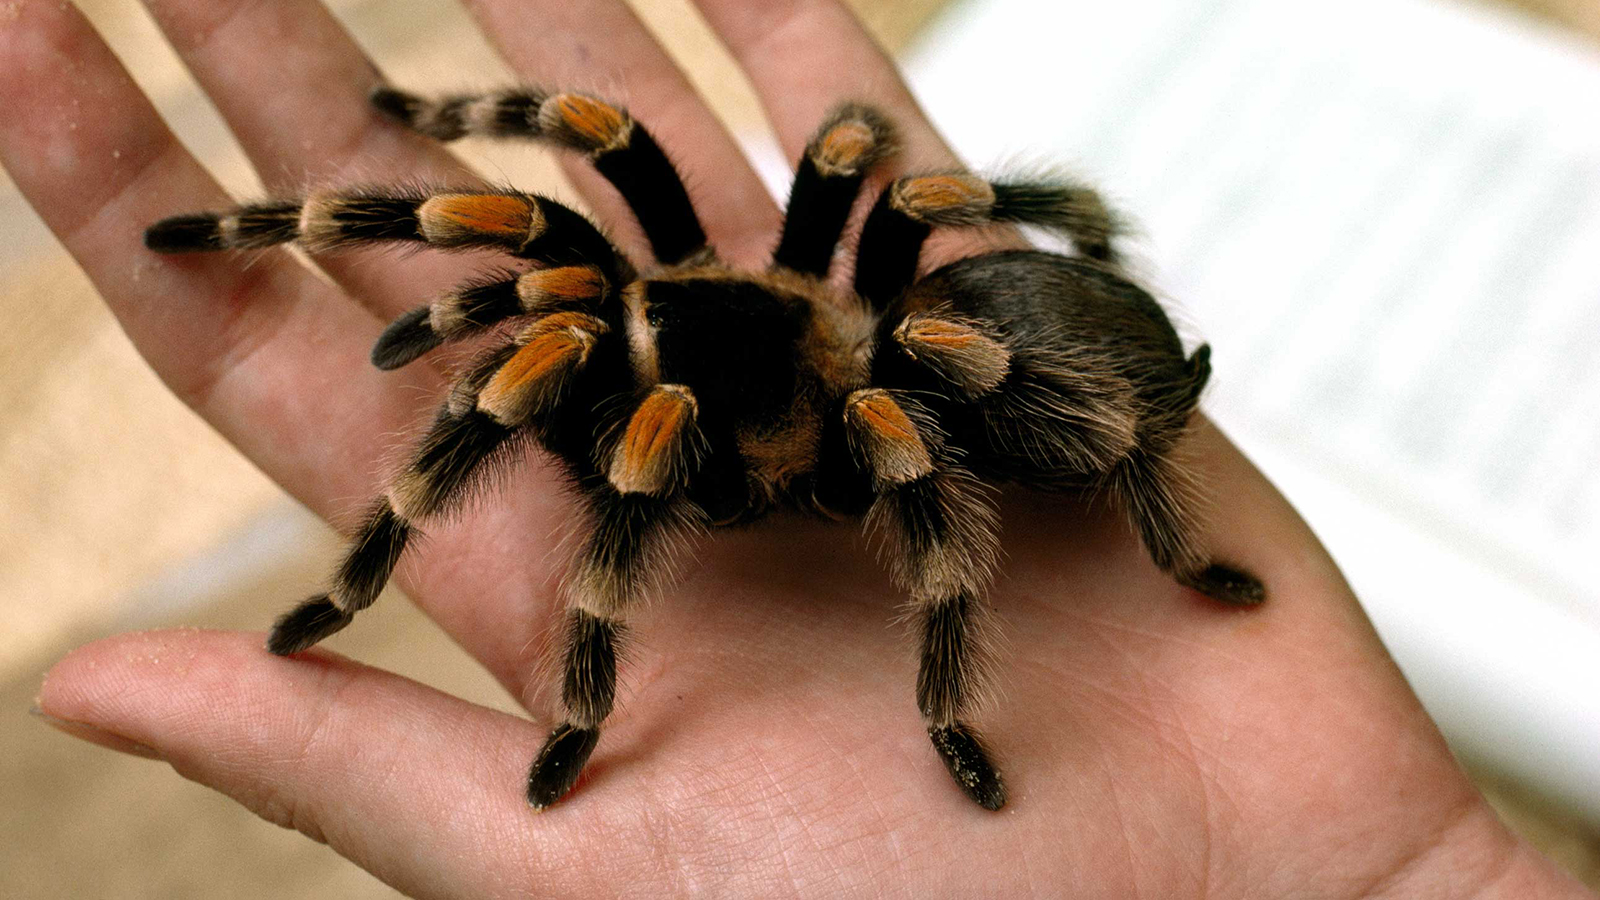 Tarantula Pictures - Kids Search